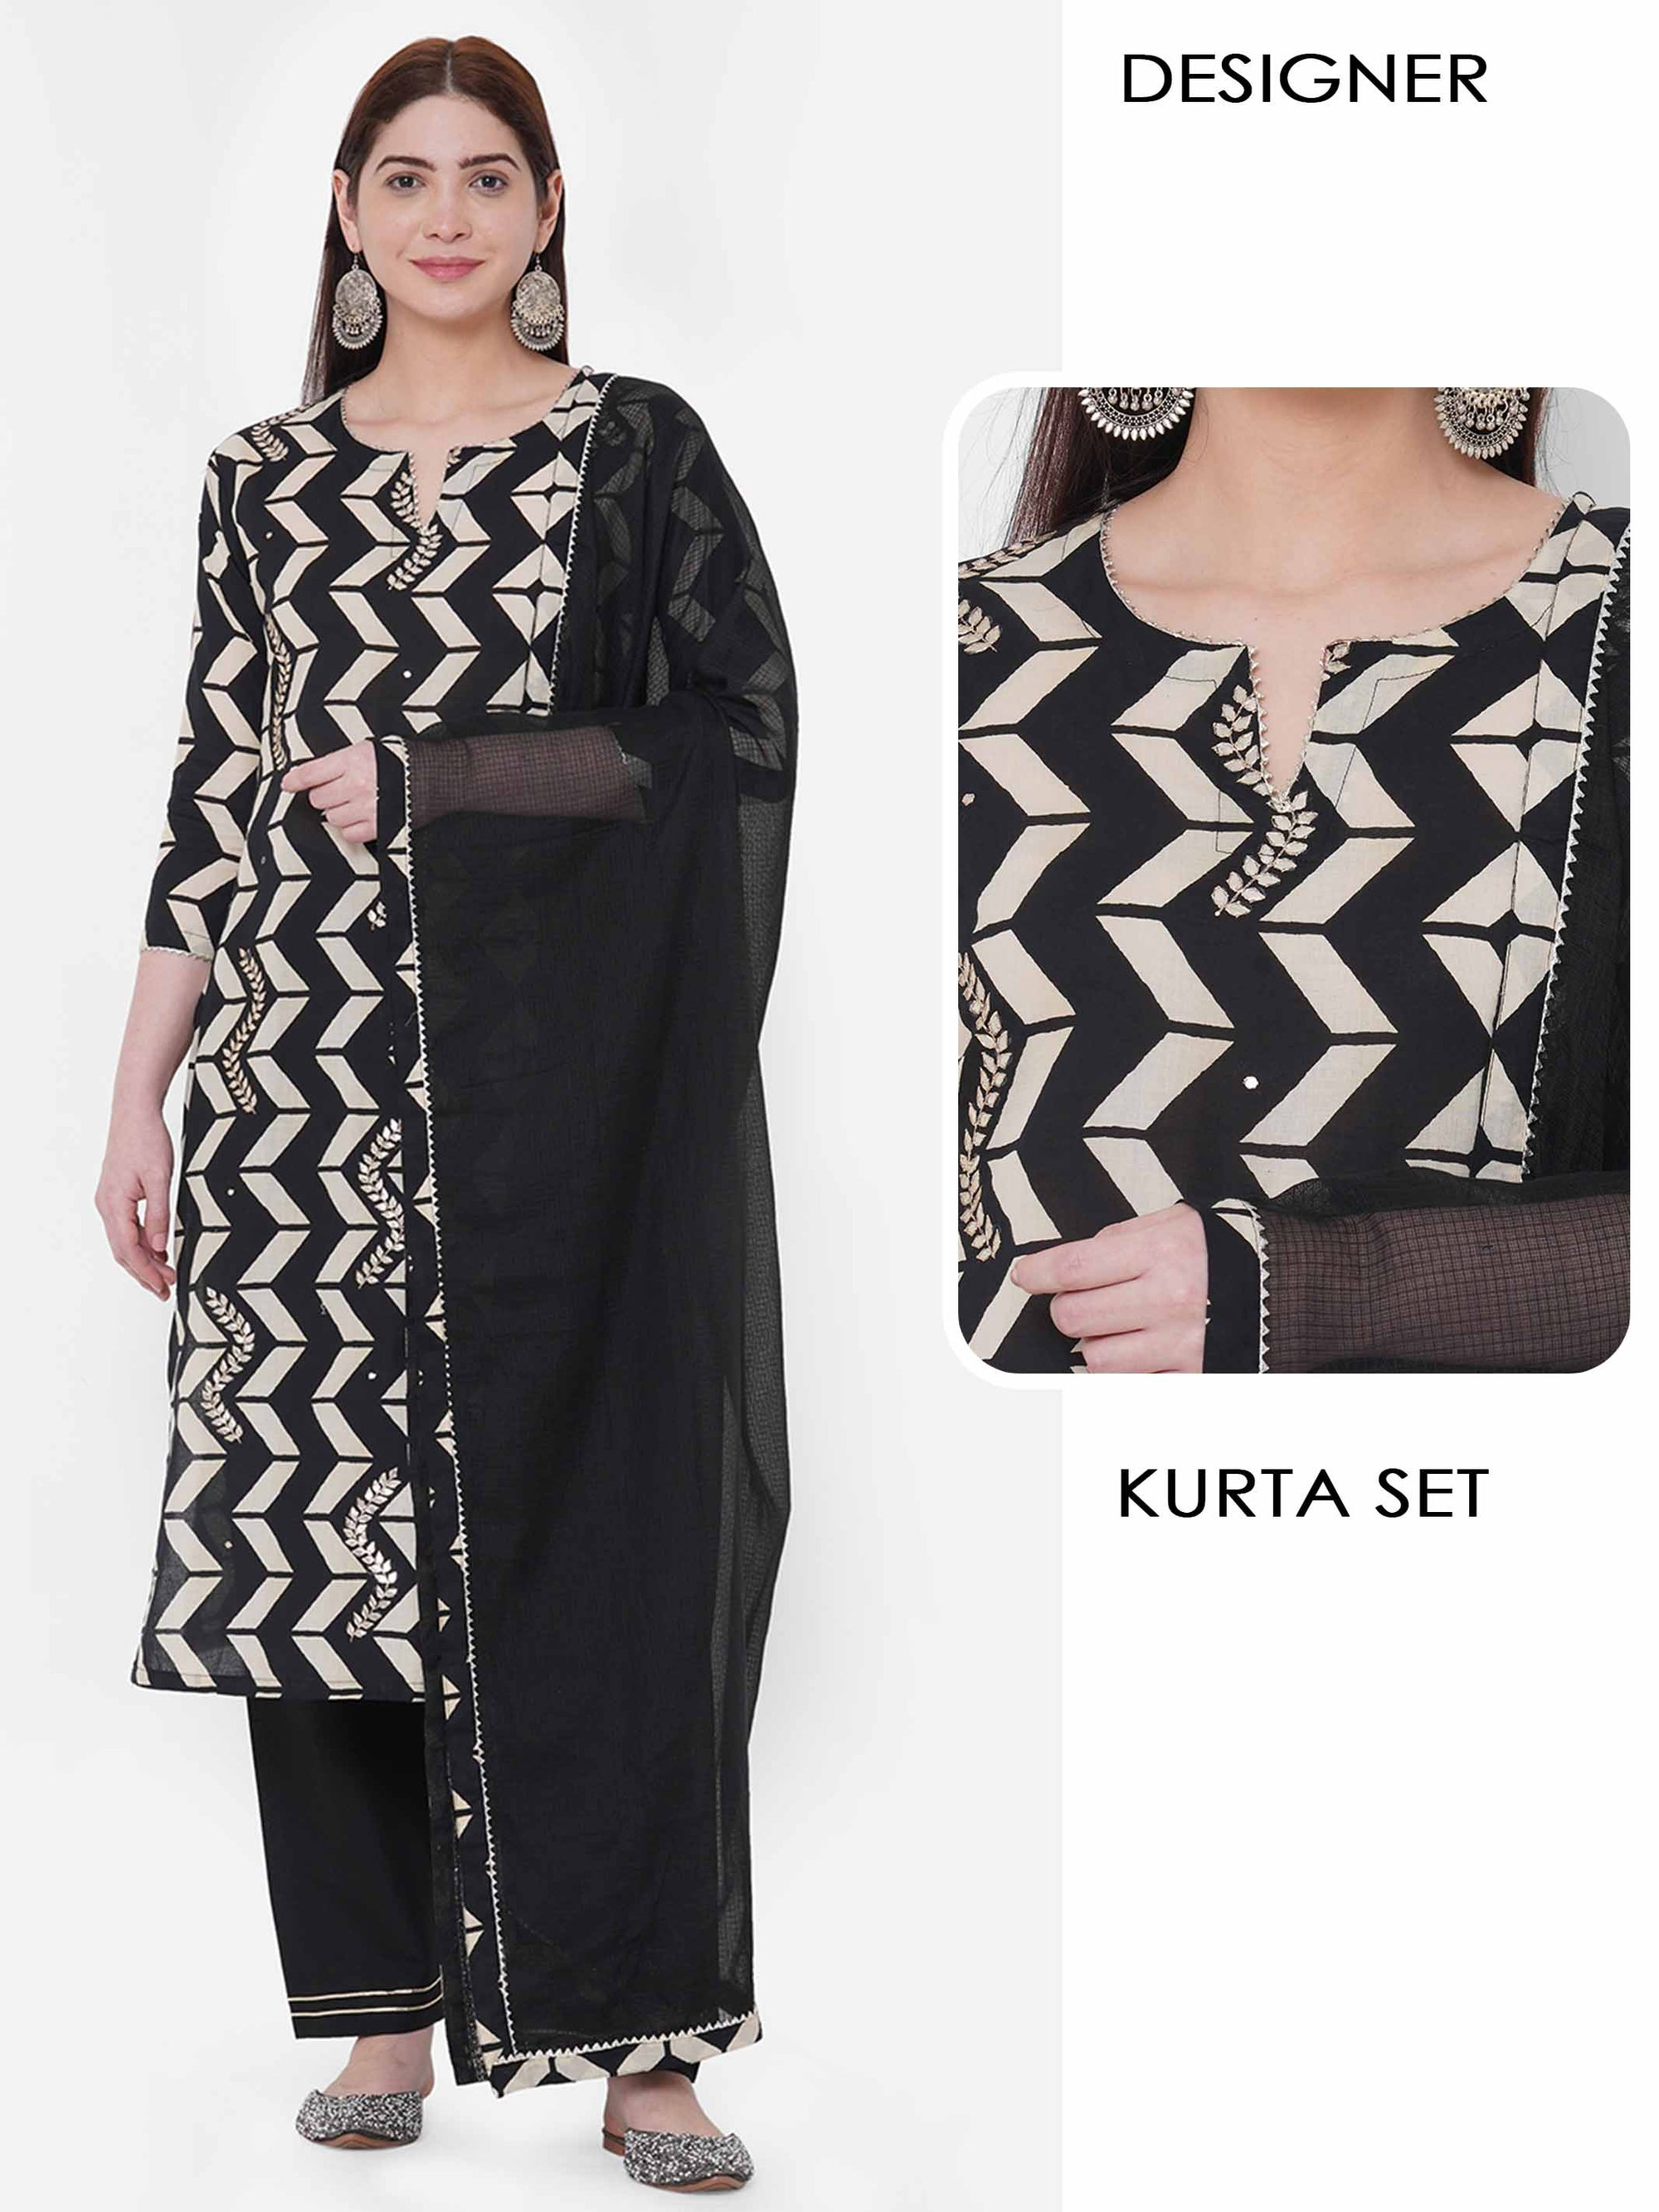 Vertical Chevron Printed & Gota Embellished Kurta with Solid Pant with Solid Dupatta – Black